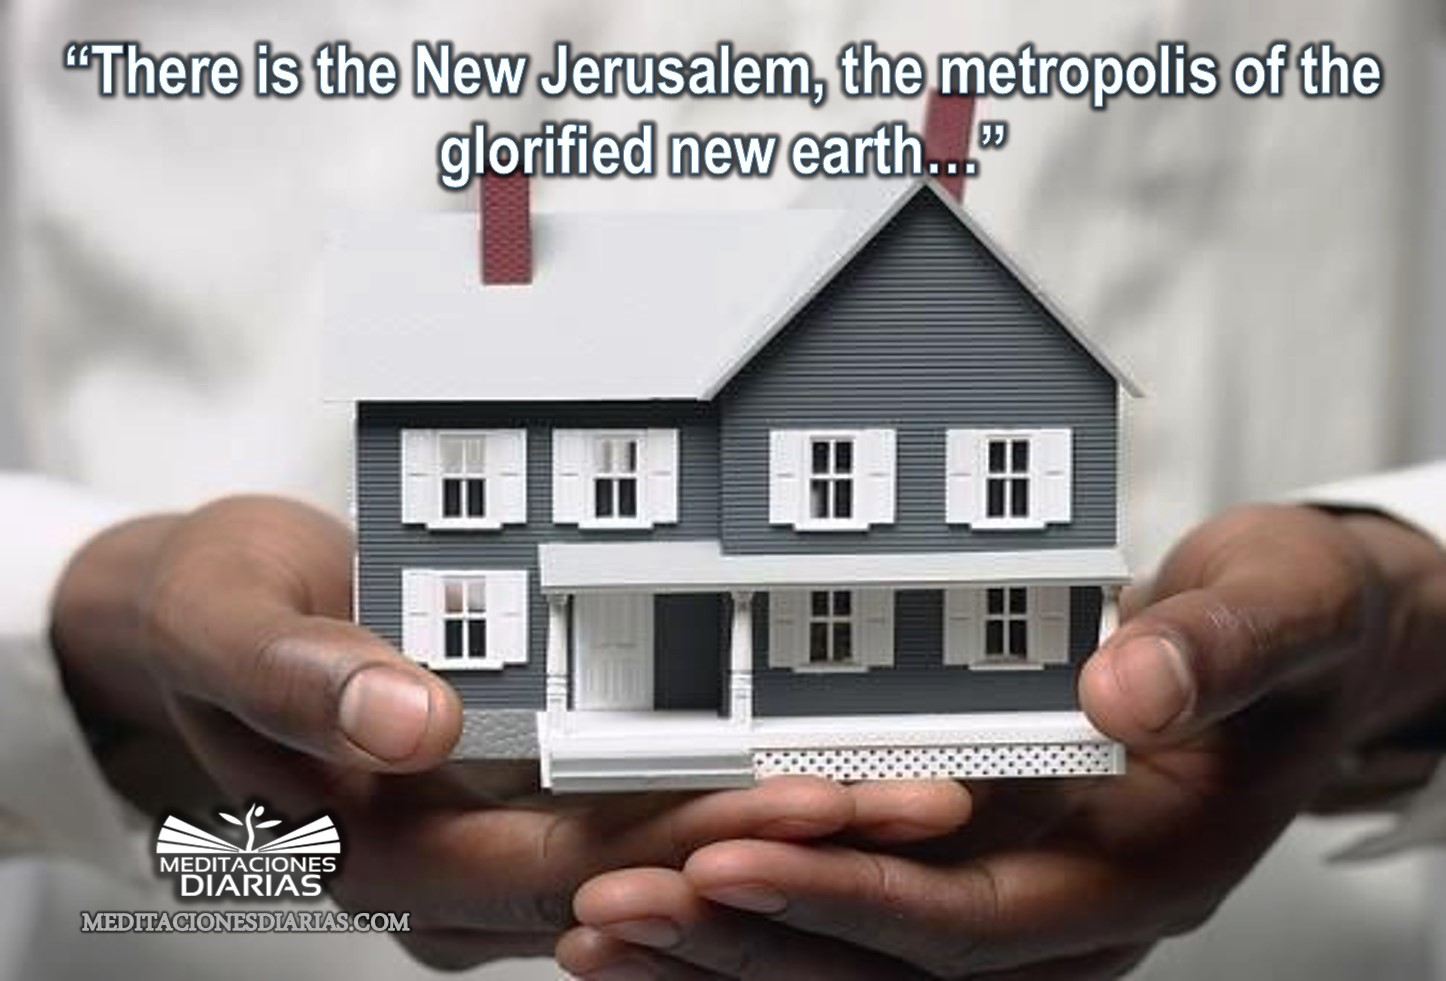 At Home in the New Jerusalem